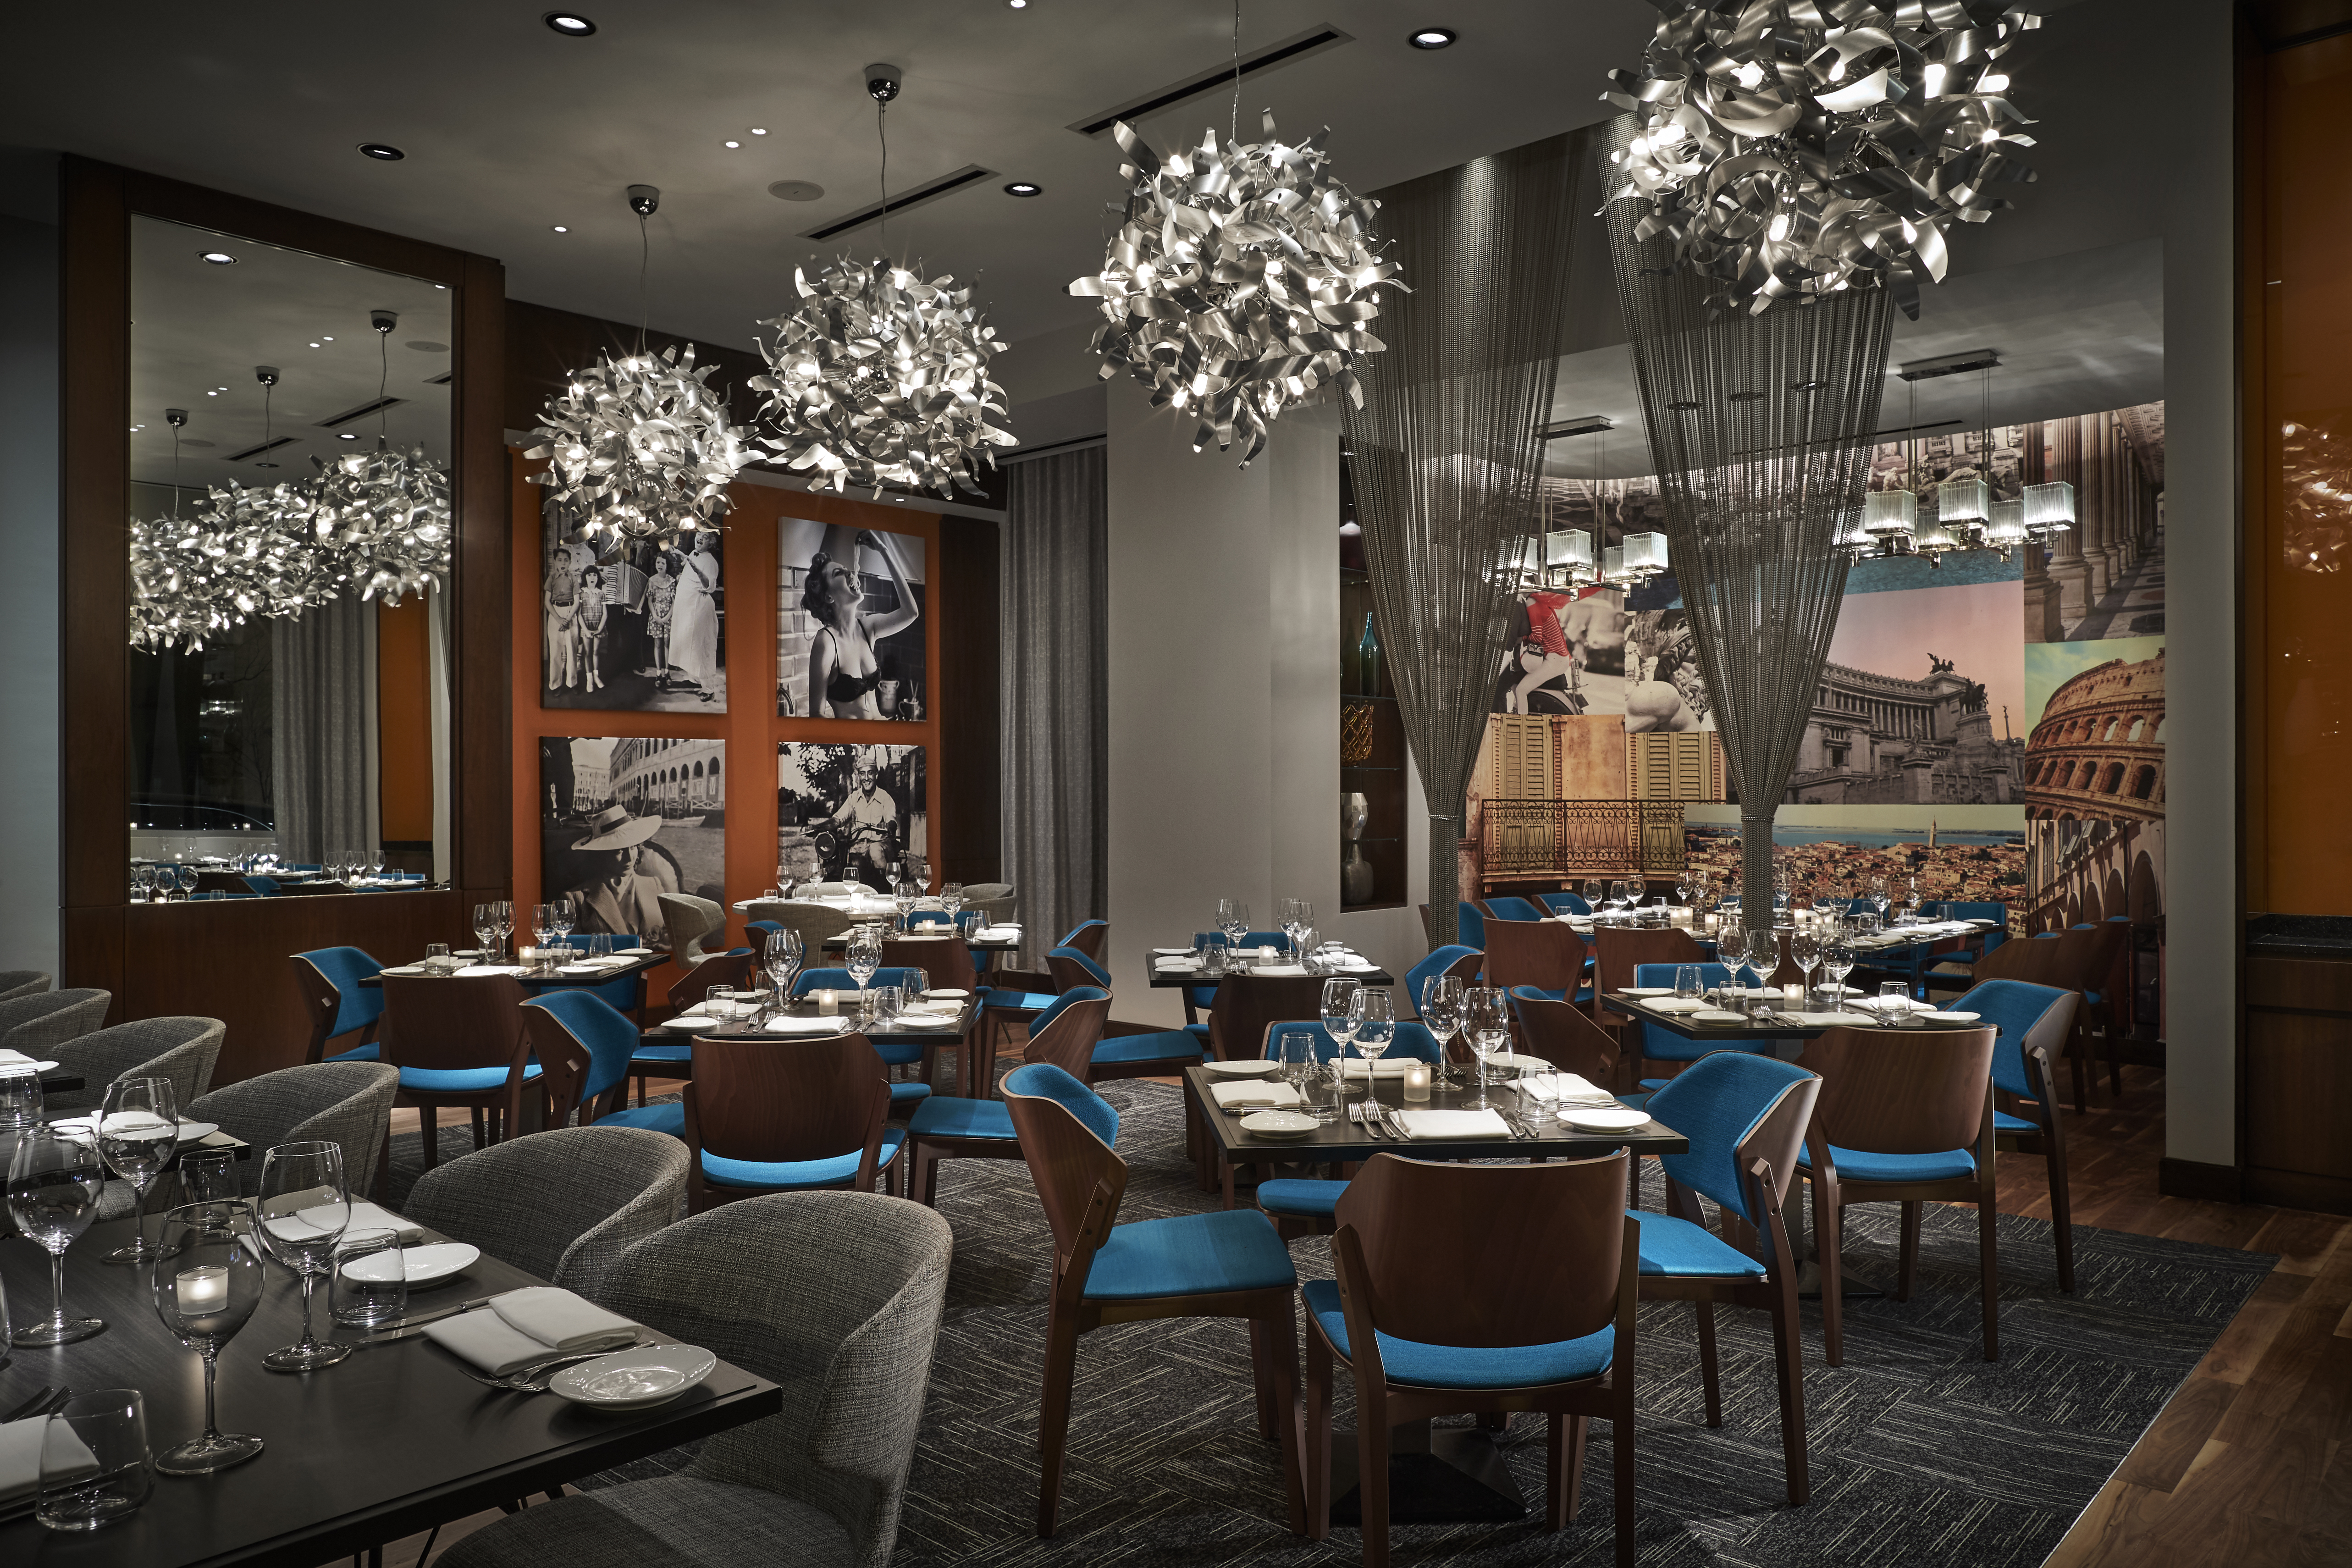 Tables, chairs, and art inside the dining room at Bibiana, which was renovated in January 2018.